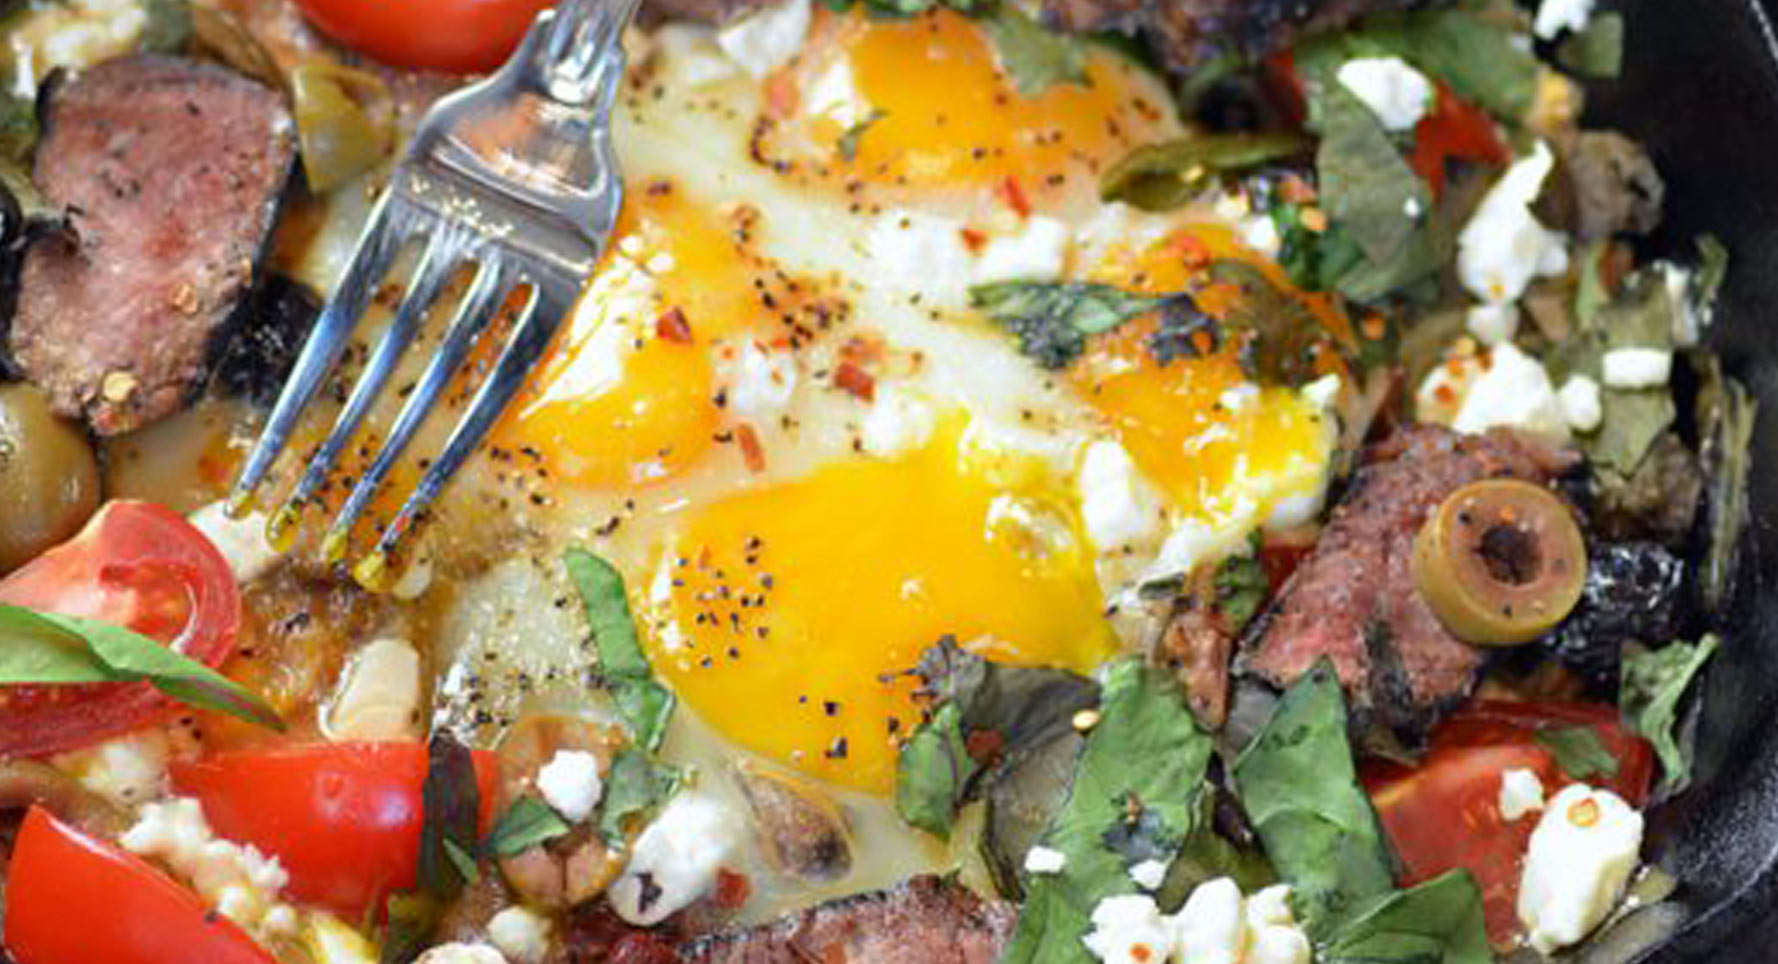 Photograph of Meat and Eggs from Ally's Kitchen